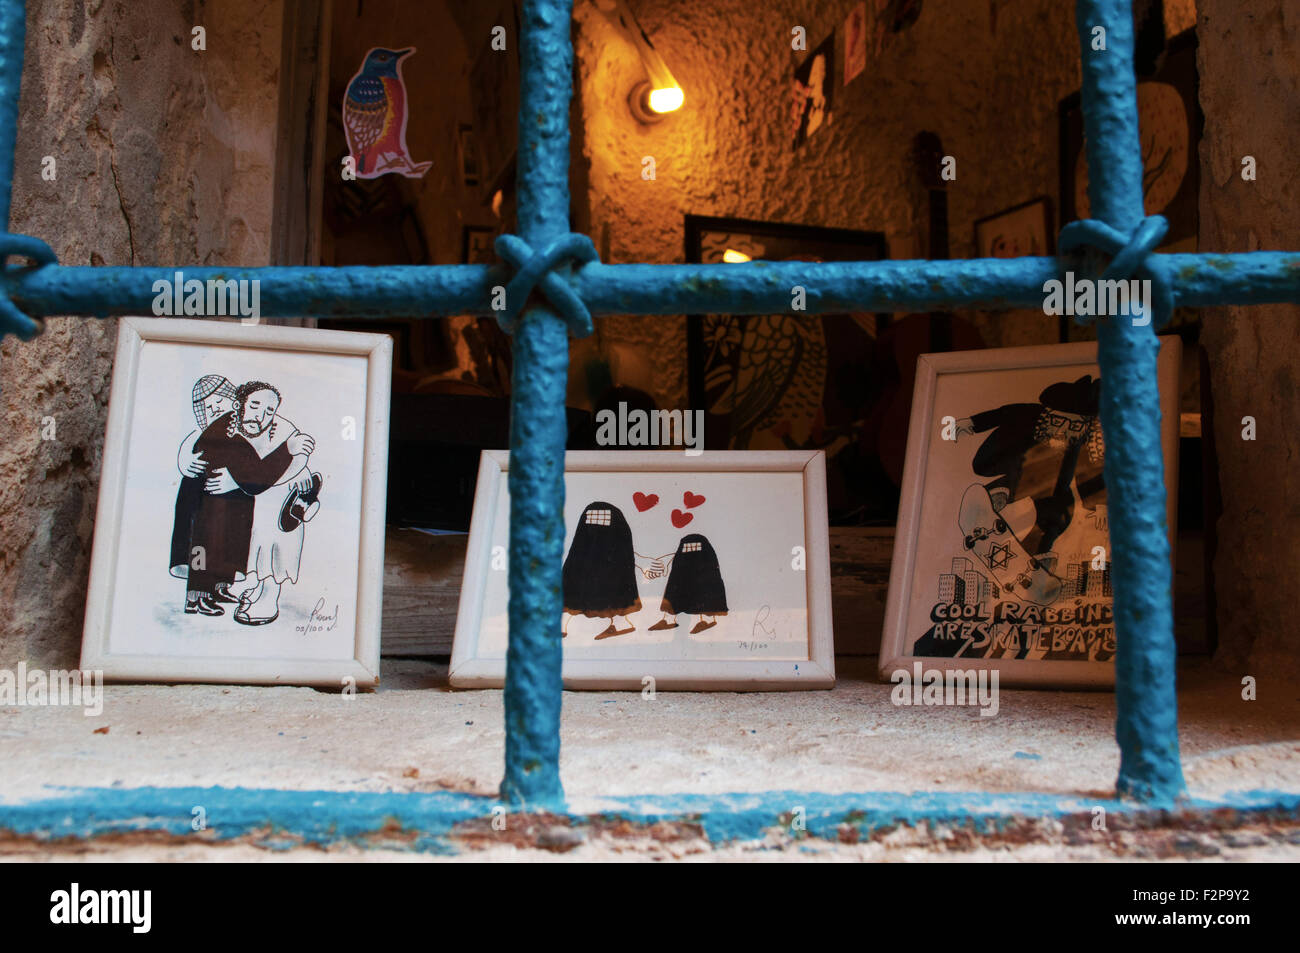 Jaffa arts and crafts, hand made pictures, drawning, artist, Israel, muslim man, hug, jewish man, integration, coexistence, - Stock Image